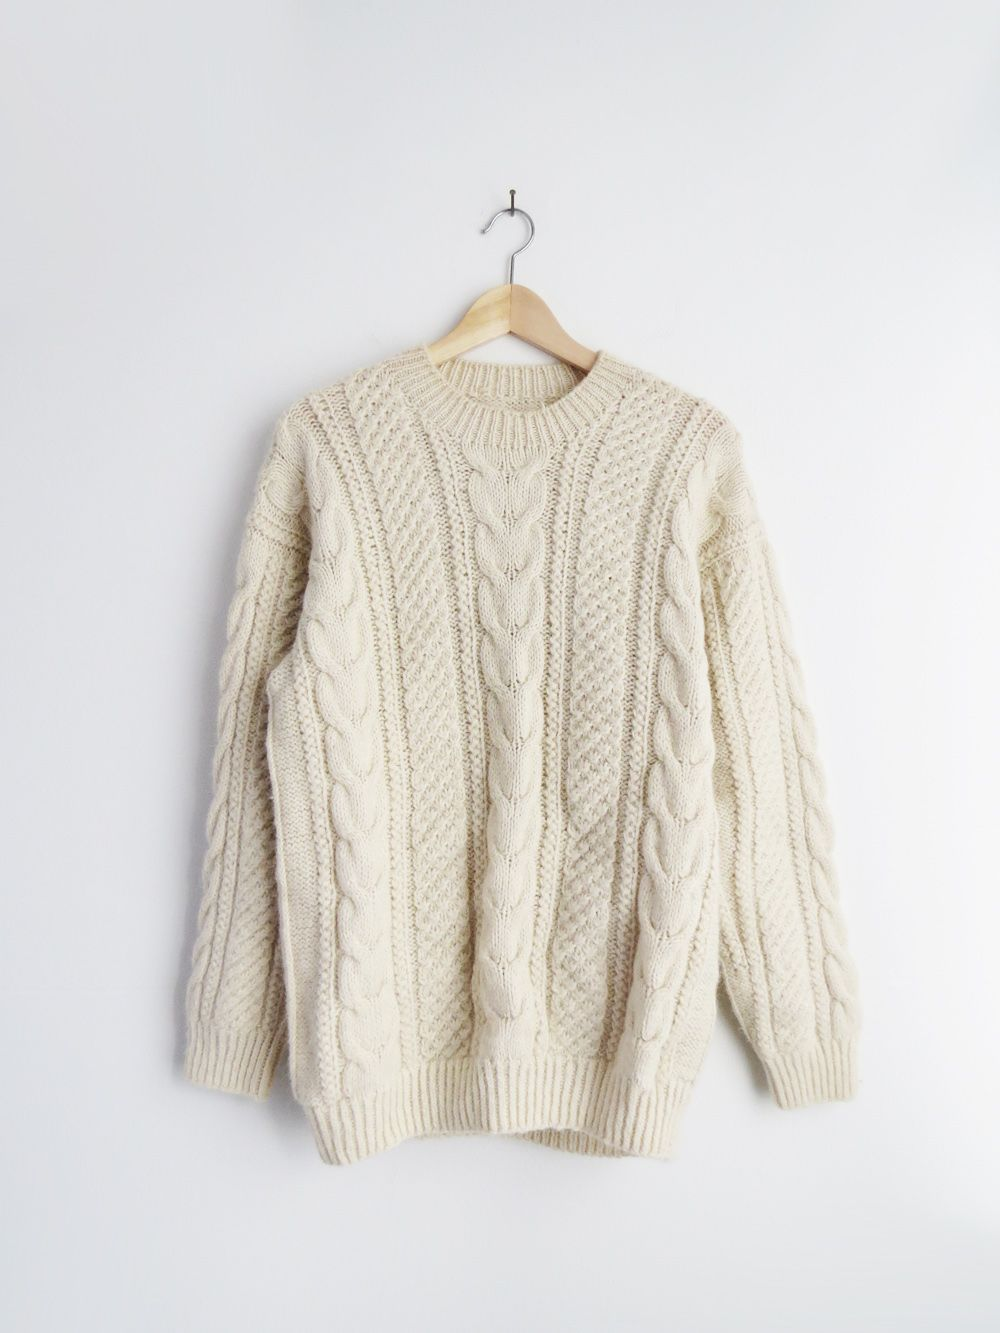 Cream Knit Sweater // Vintage Fisherman Sweater | Z-SOİL CREAM ...